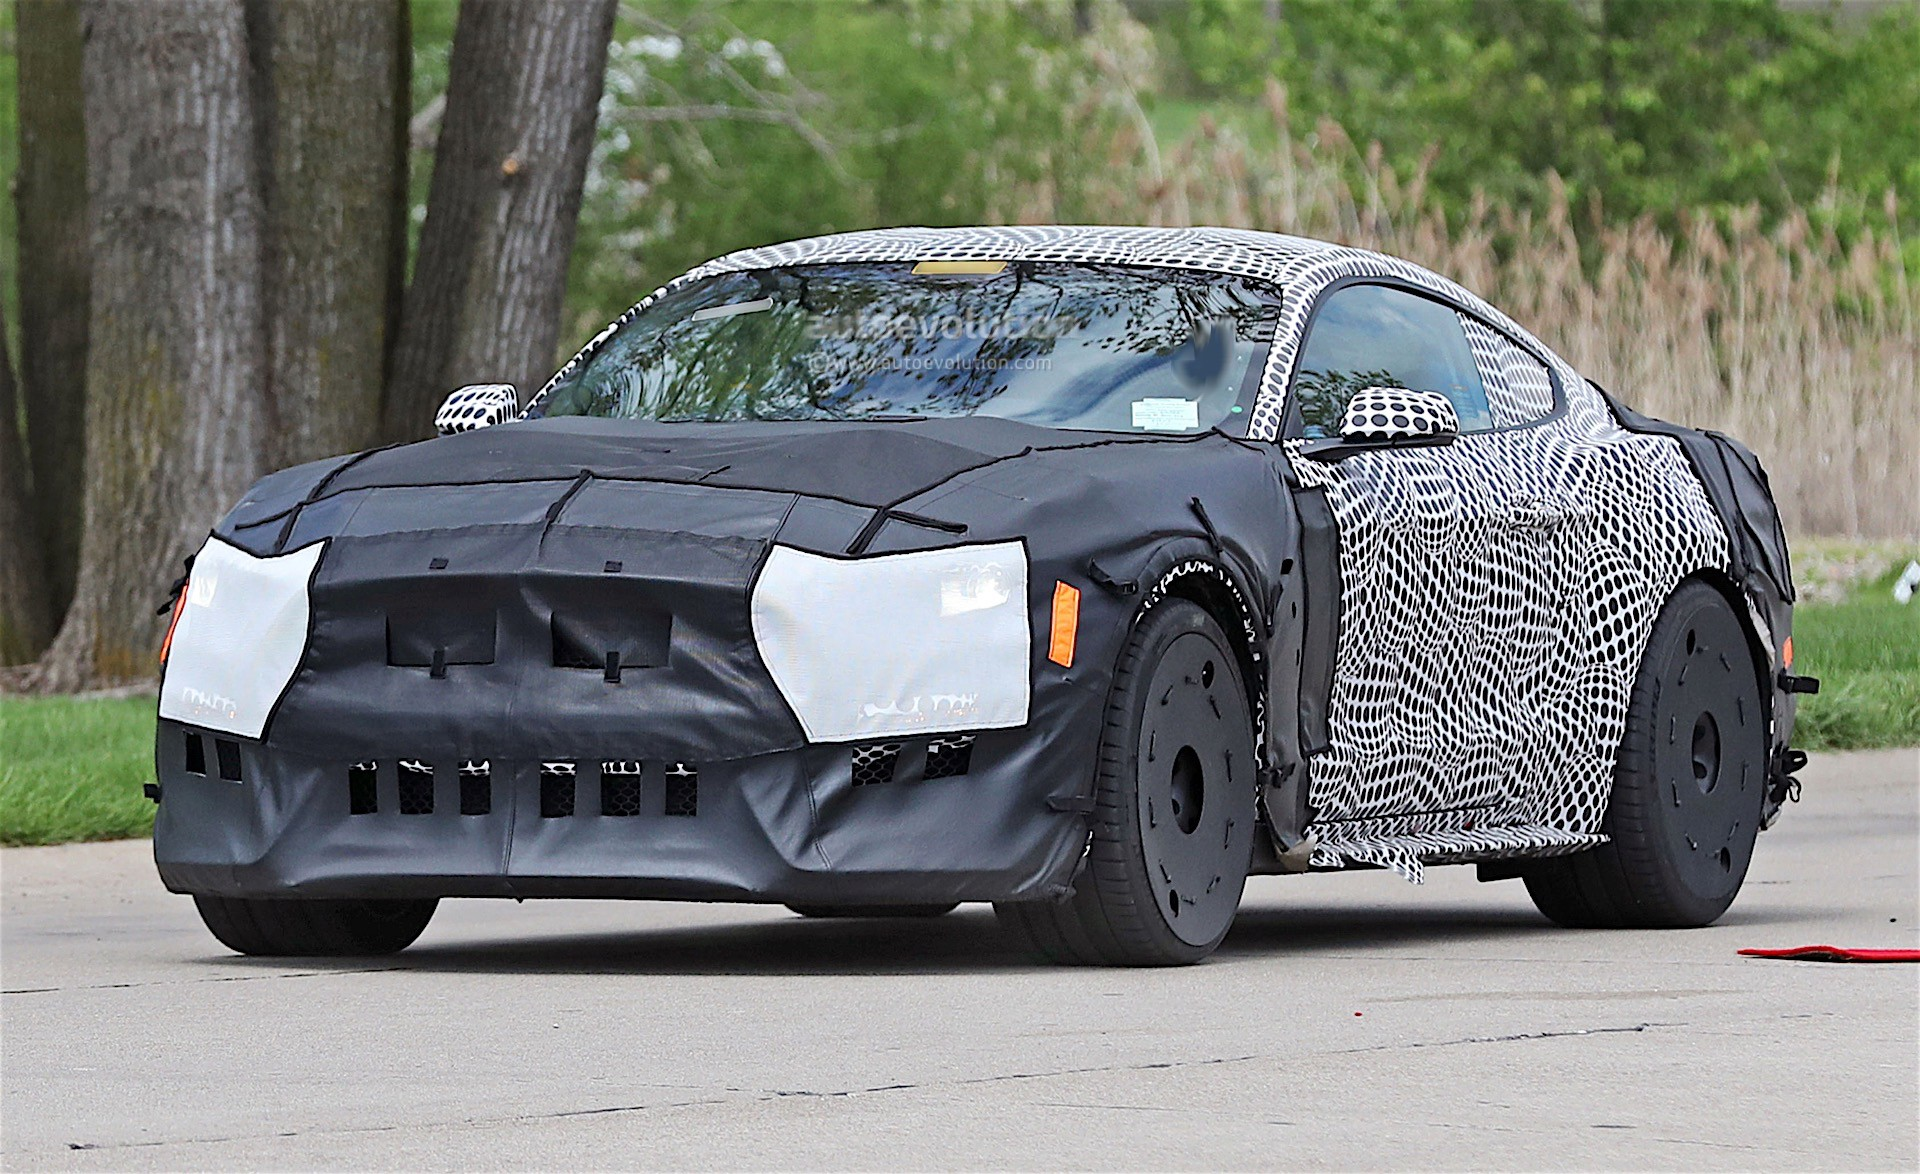 2020 Ford Mustang Shelby GT500 Supercharged 5.2L Predator ...